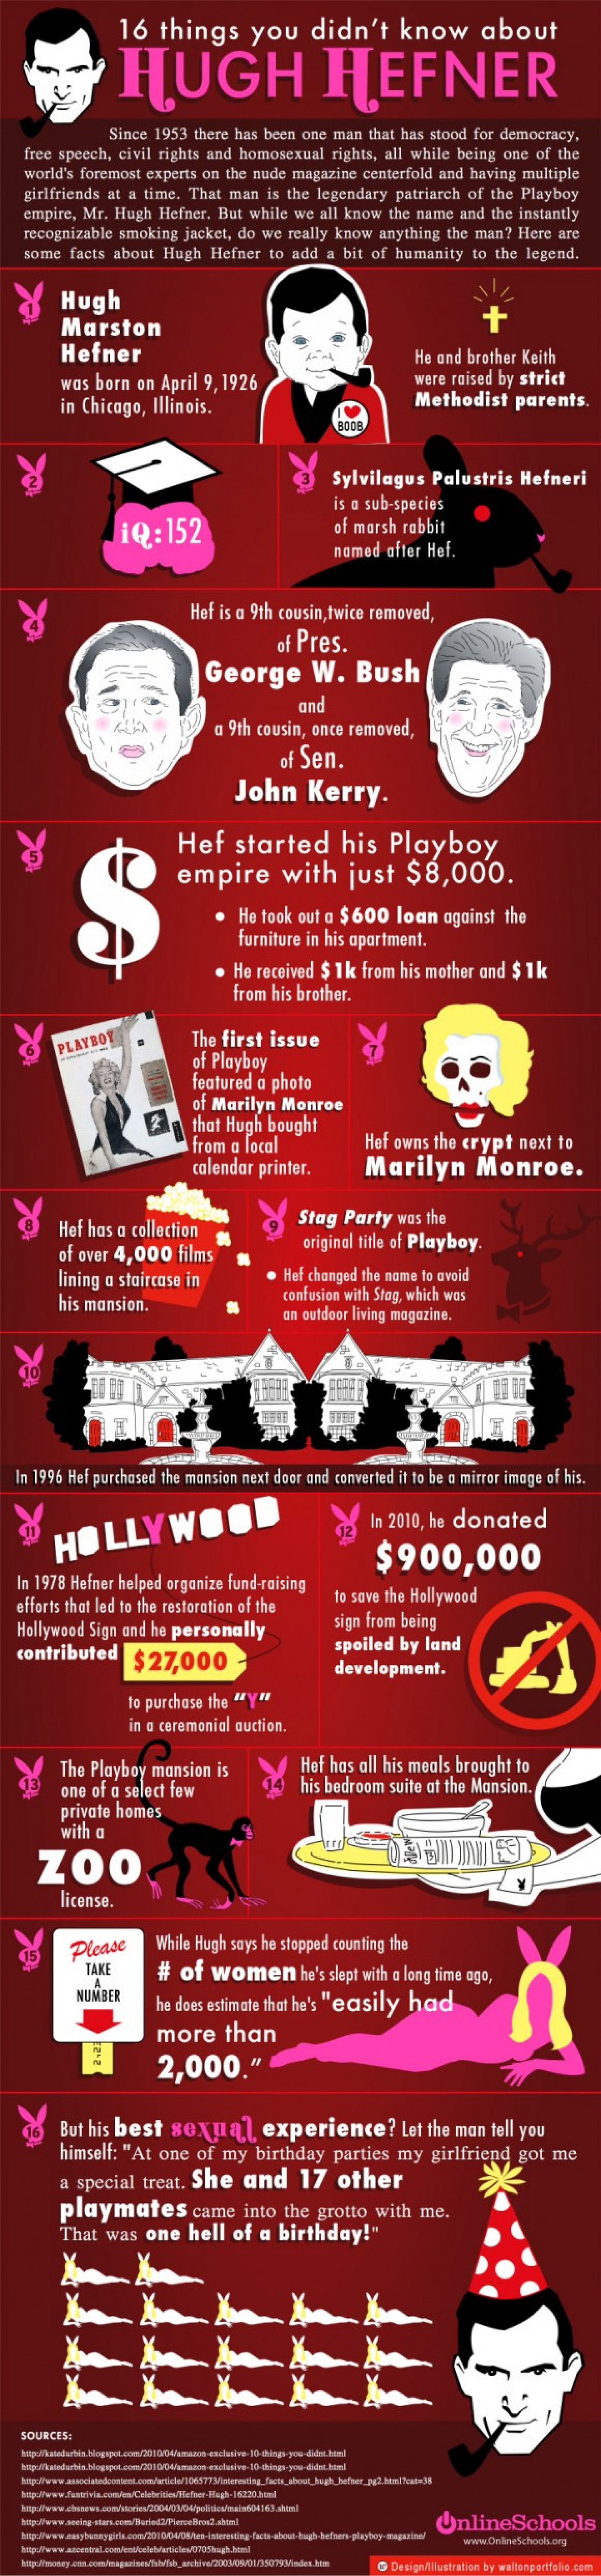 16 Things You Didn't Know about Hugh Hefner... Infographic